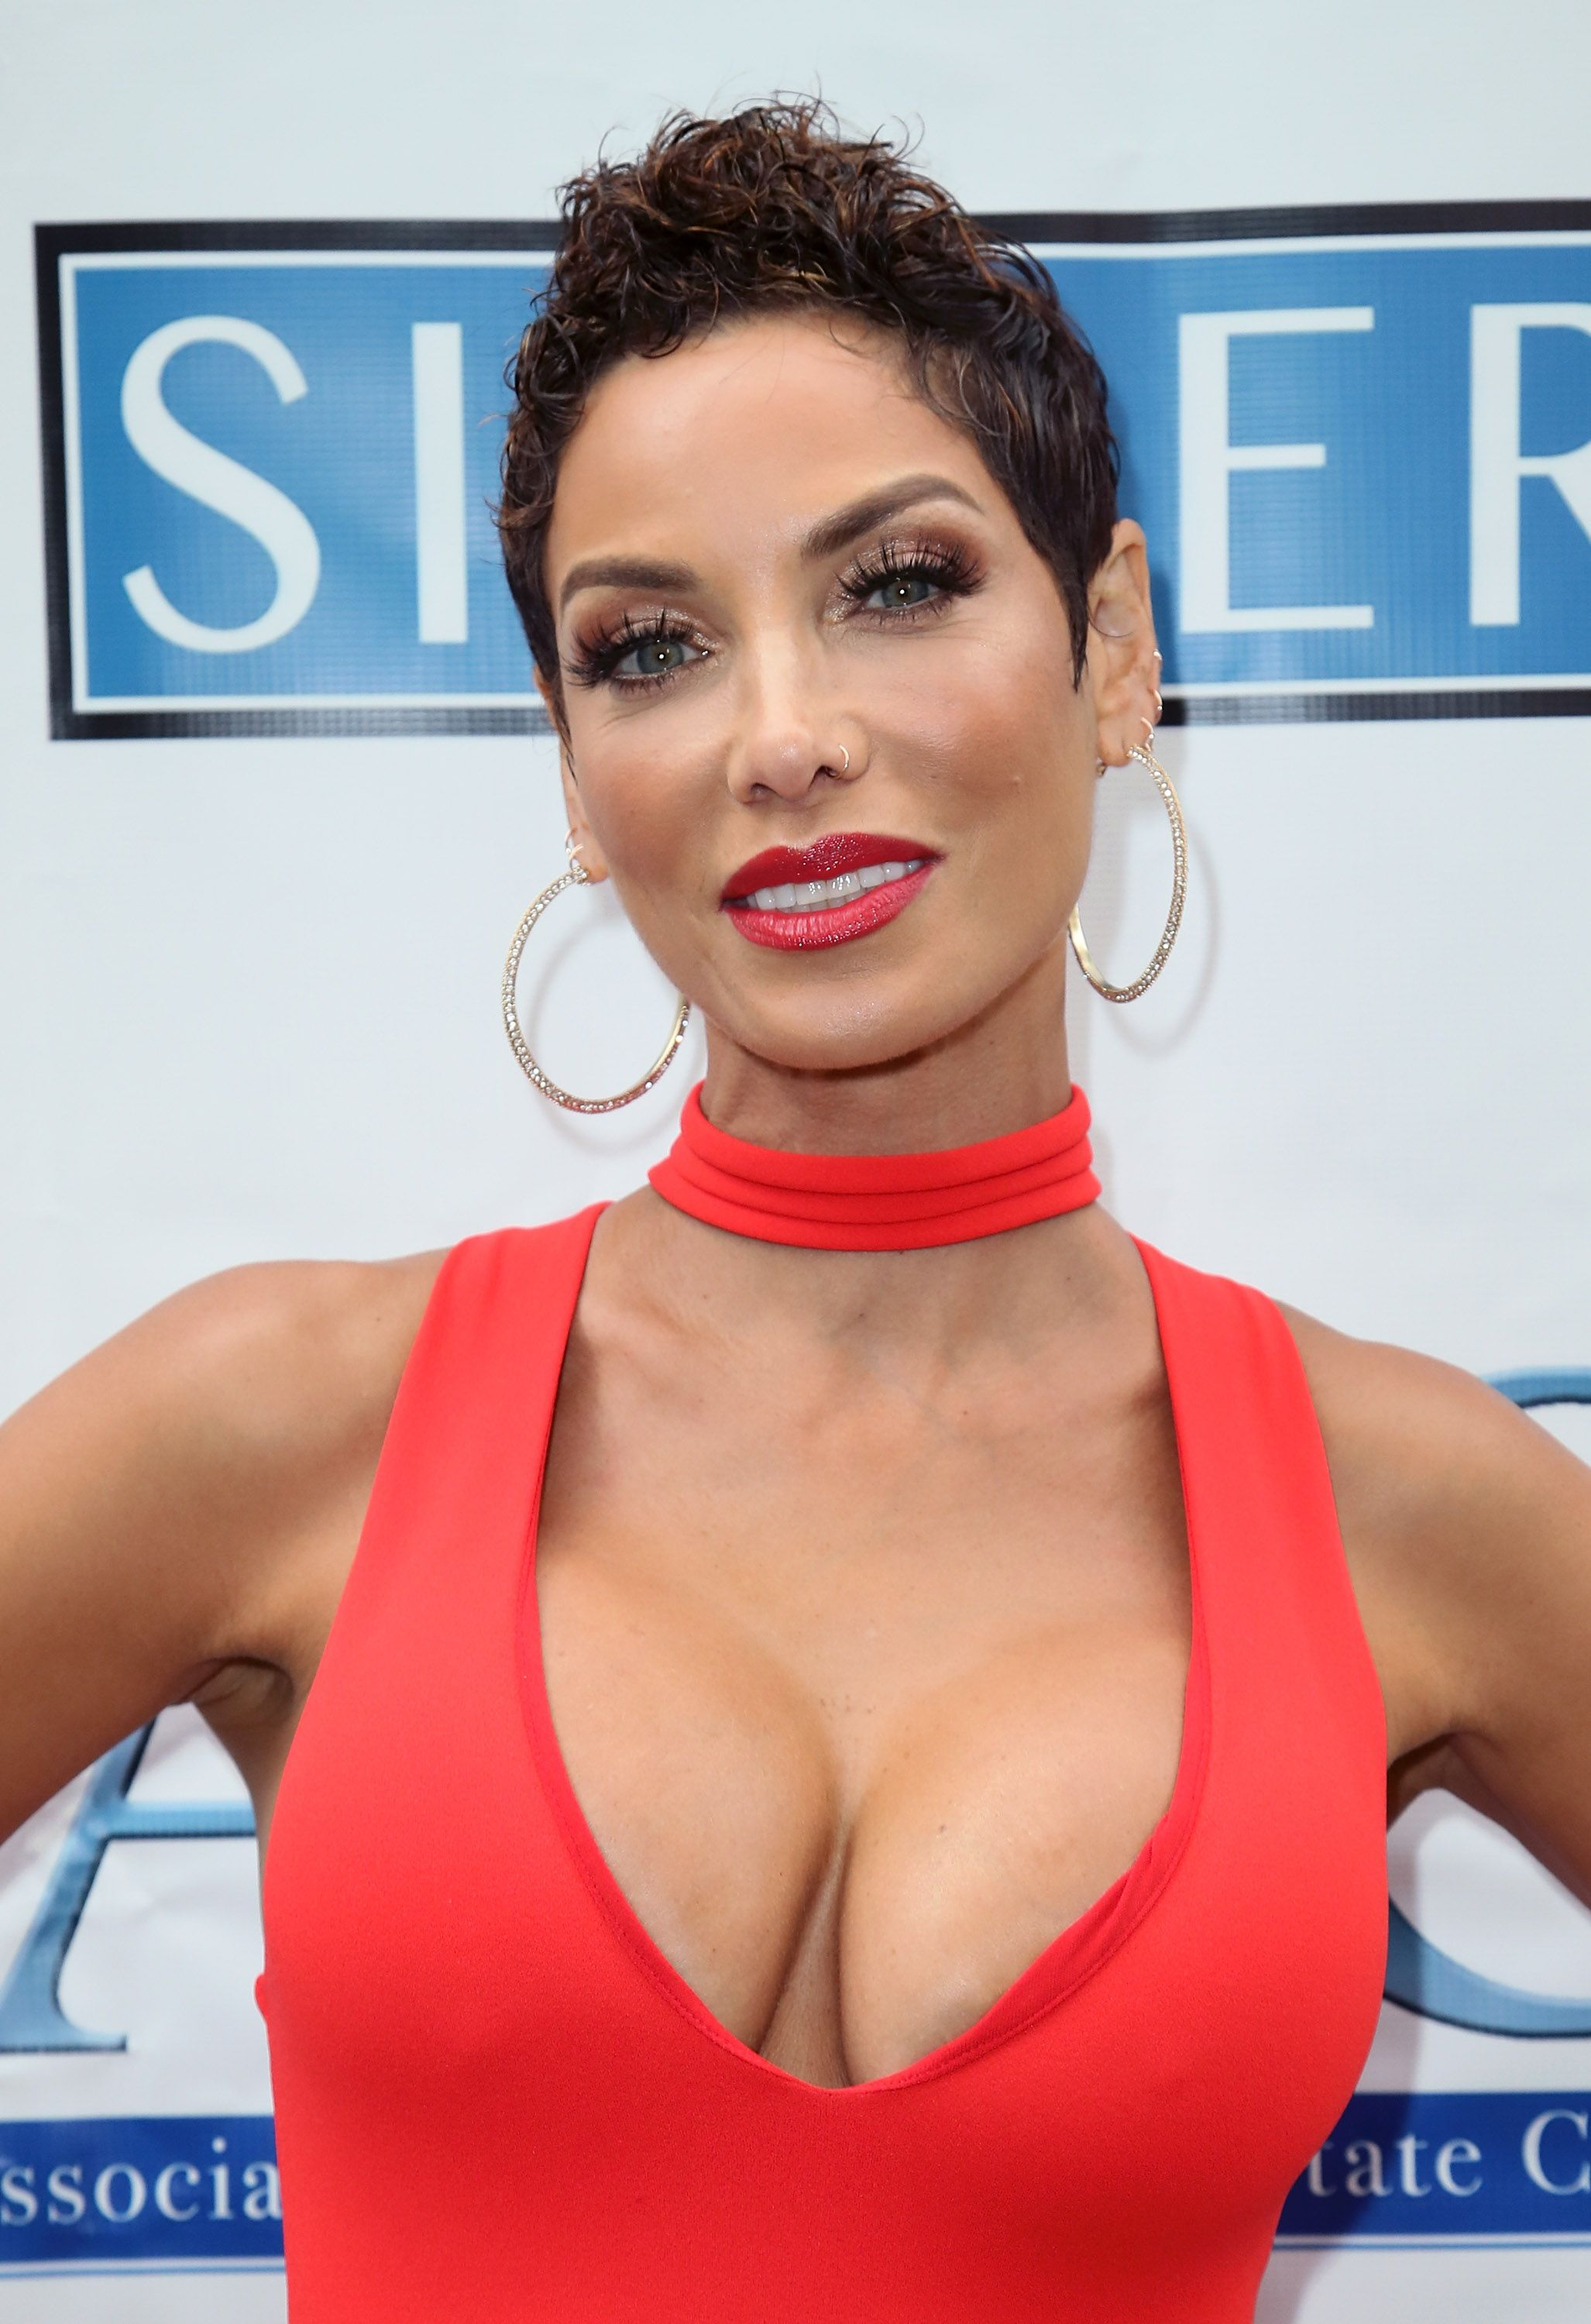 Nicole Mitchell Murphy during the Associates for Breast and Prostate Cancer Studies' Annual Mother's Day Luncheon at the Four Seasons Hotel Los Angeles at Beverly Hills on May 10, 2017 in Los Angeles, California. | Source: Getty Images